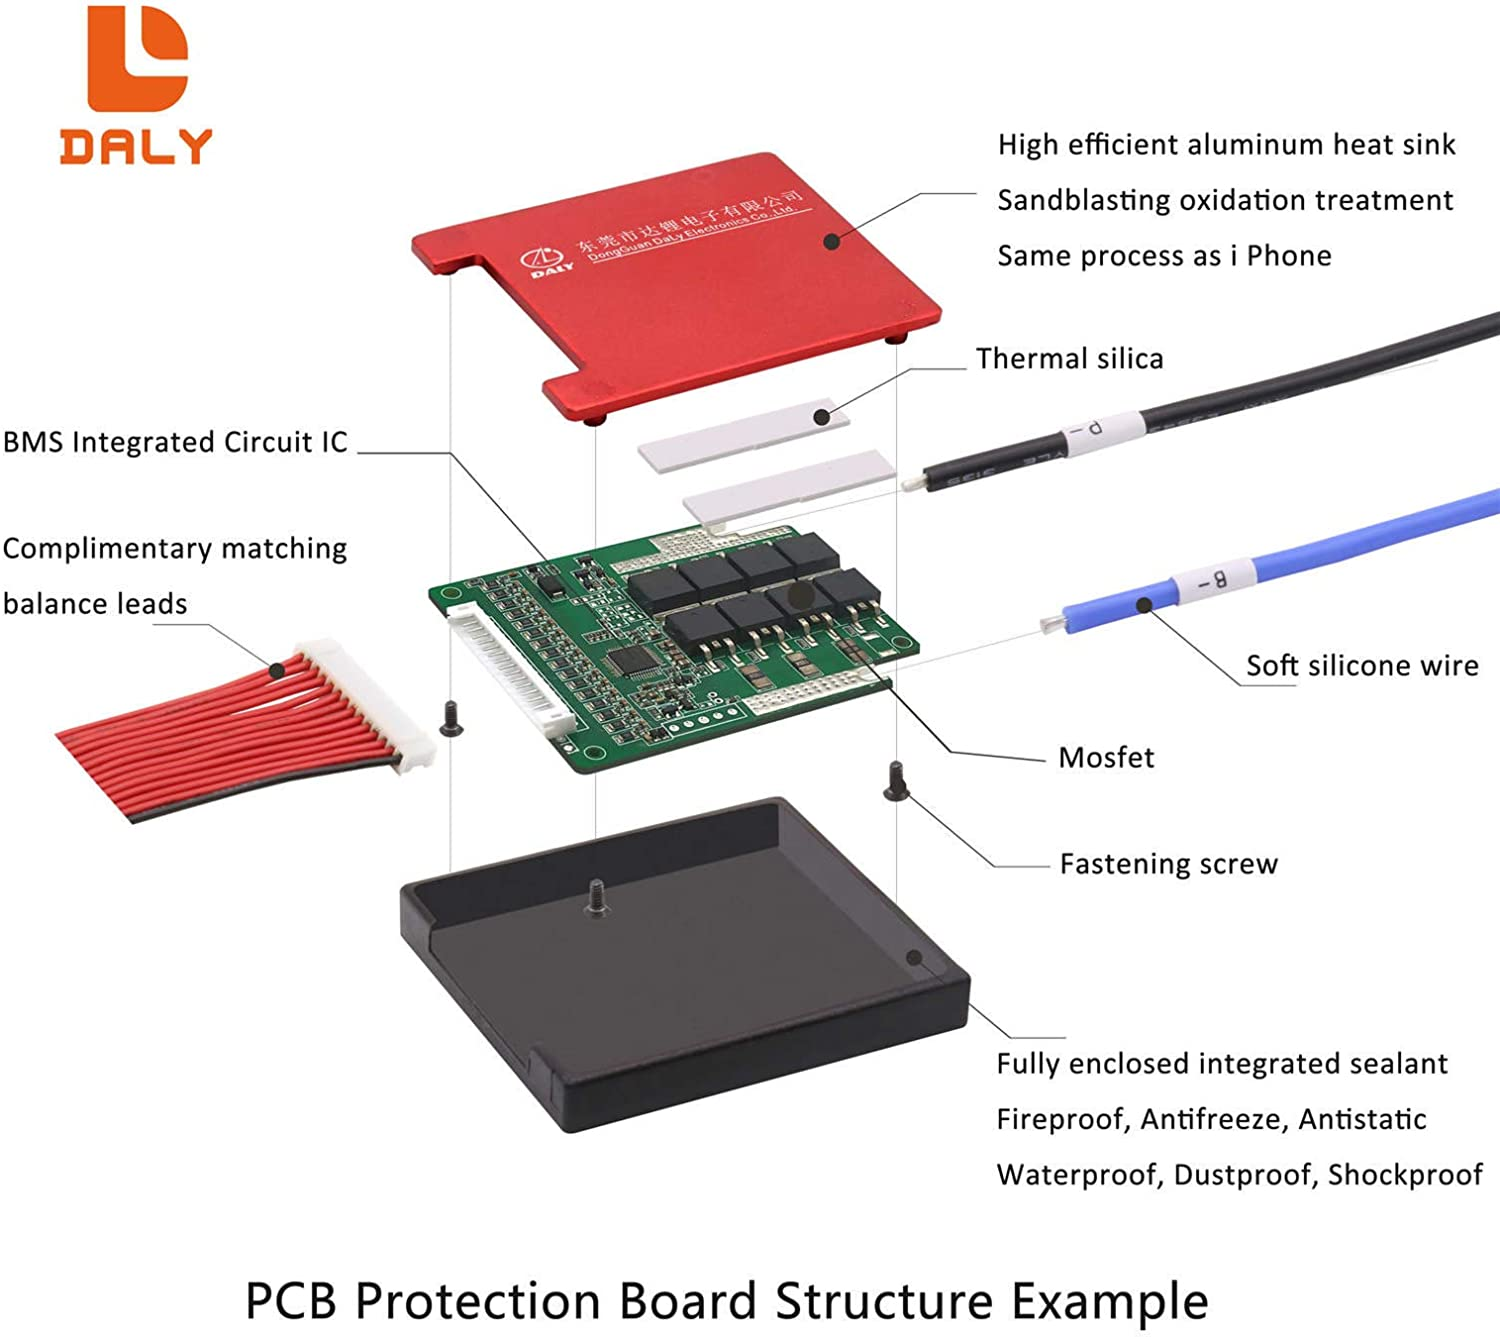 DALY BMS 13S 48V 50A Li-ion Battery Protection Module PCB Protection Board with Balance Leads Wires BMS for 18650 Battery Pack 48V